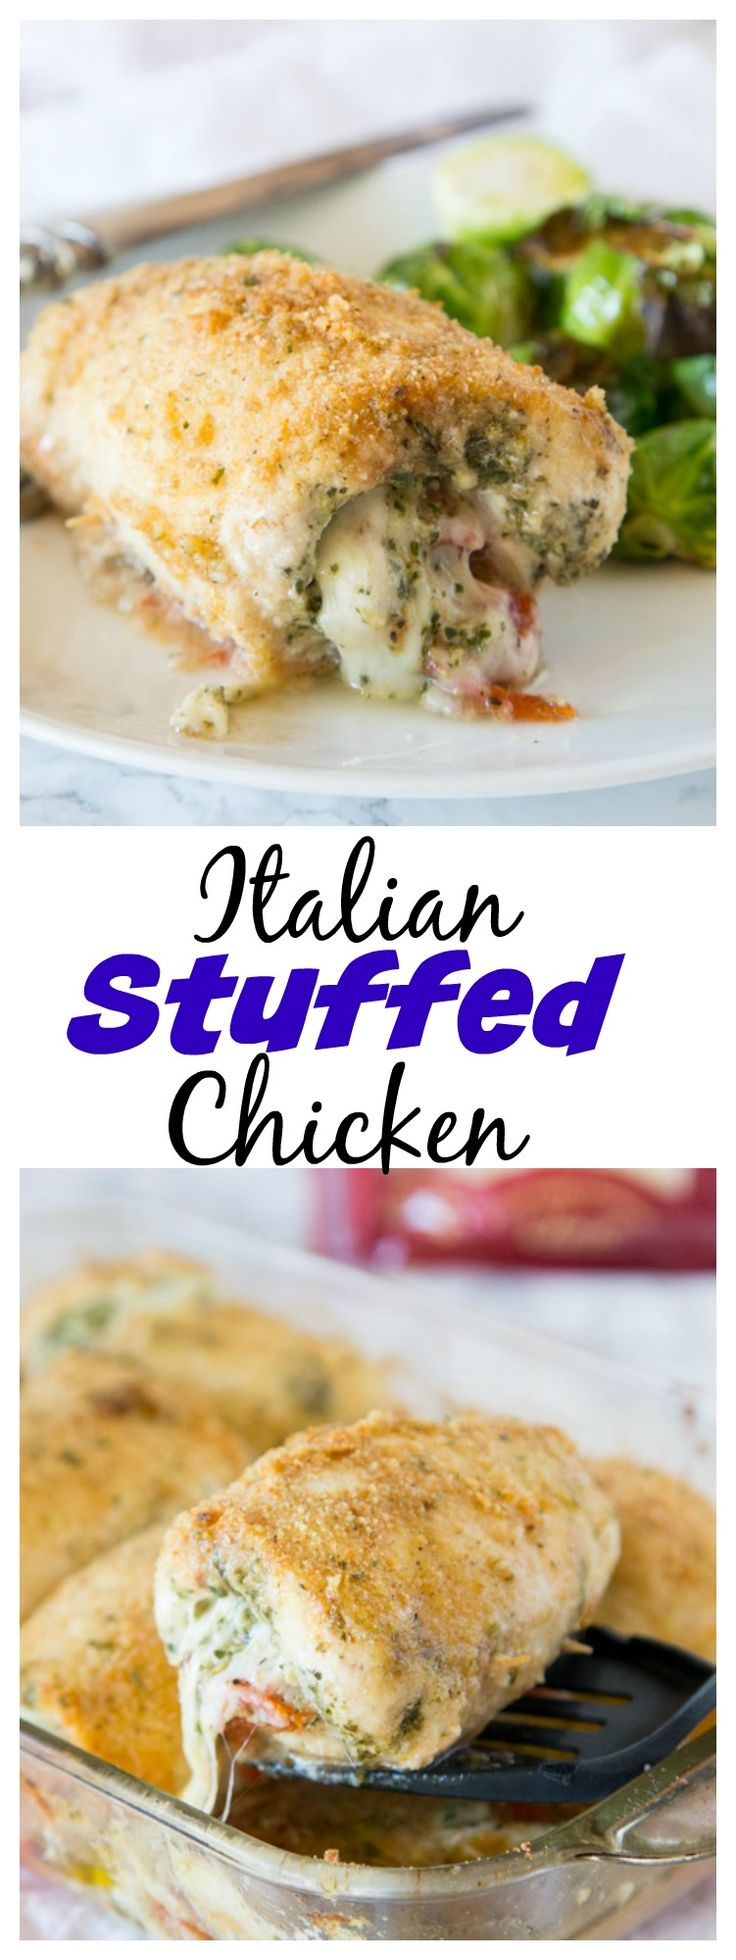 Italian Stuffed Chicken – chicken breasts rolled up with pesto, tomatoes, and cheese!  Then baked until crispy and delicious, a great family dinner.